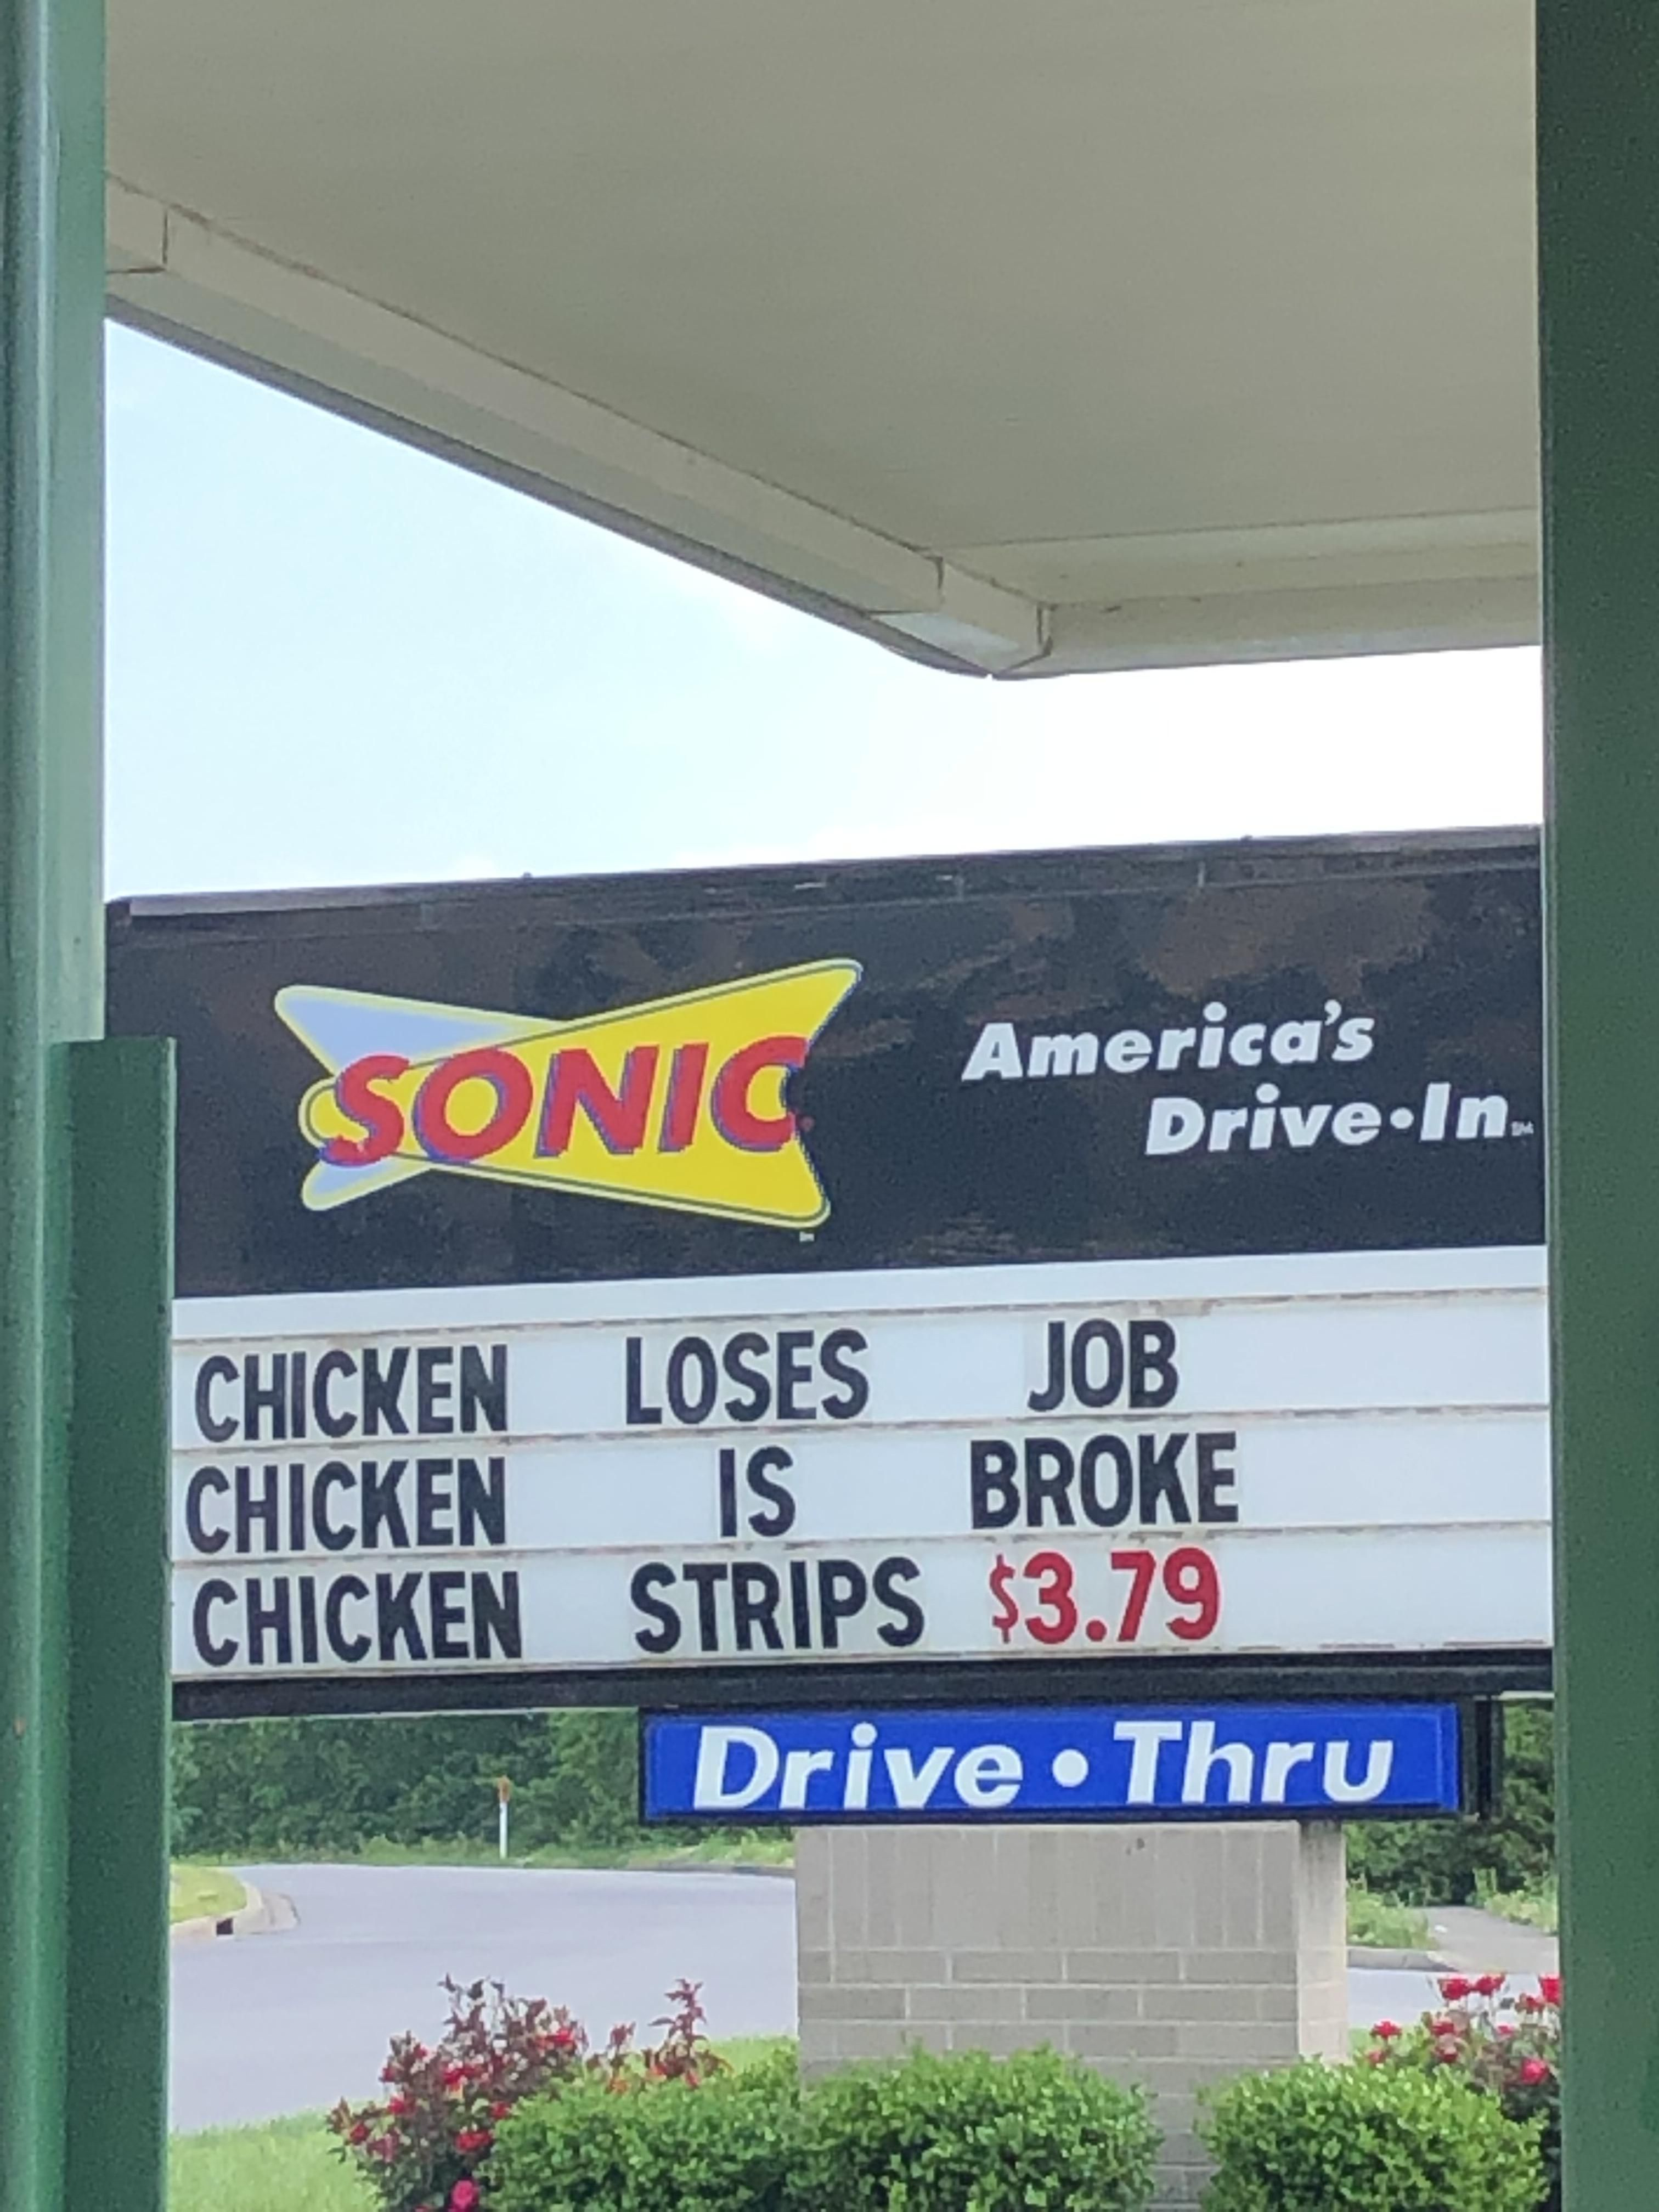 Now that's some clever advertising